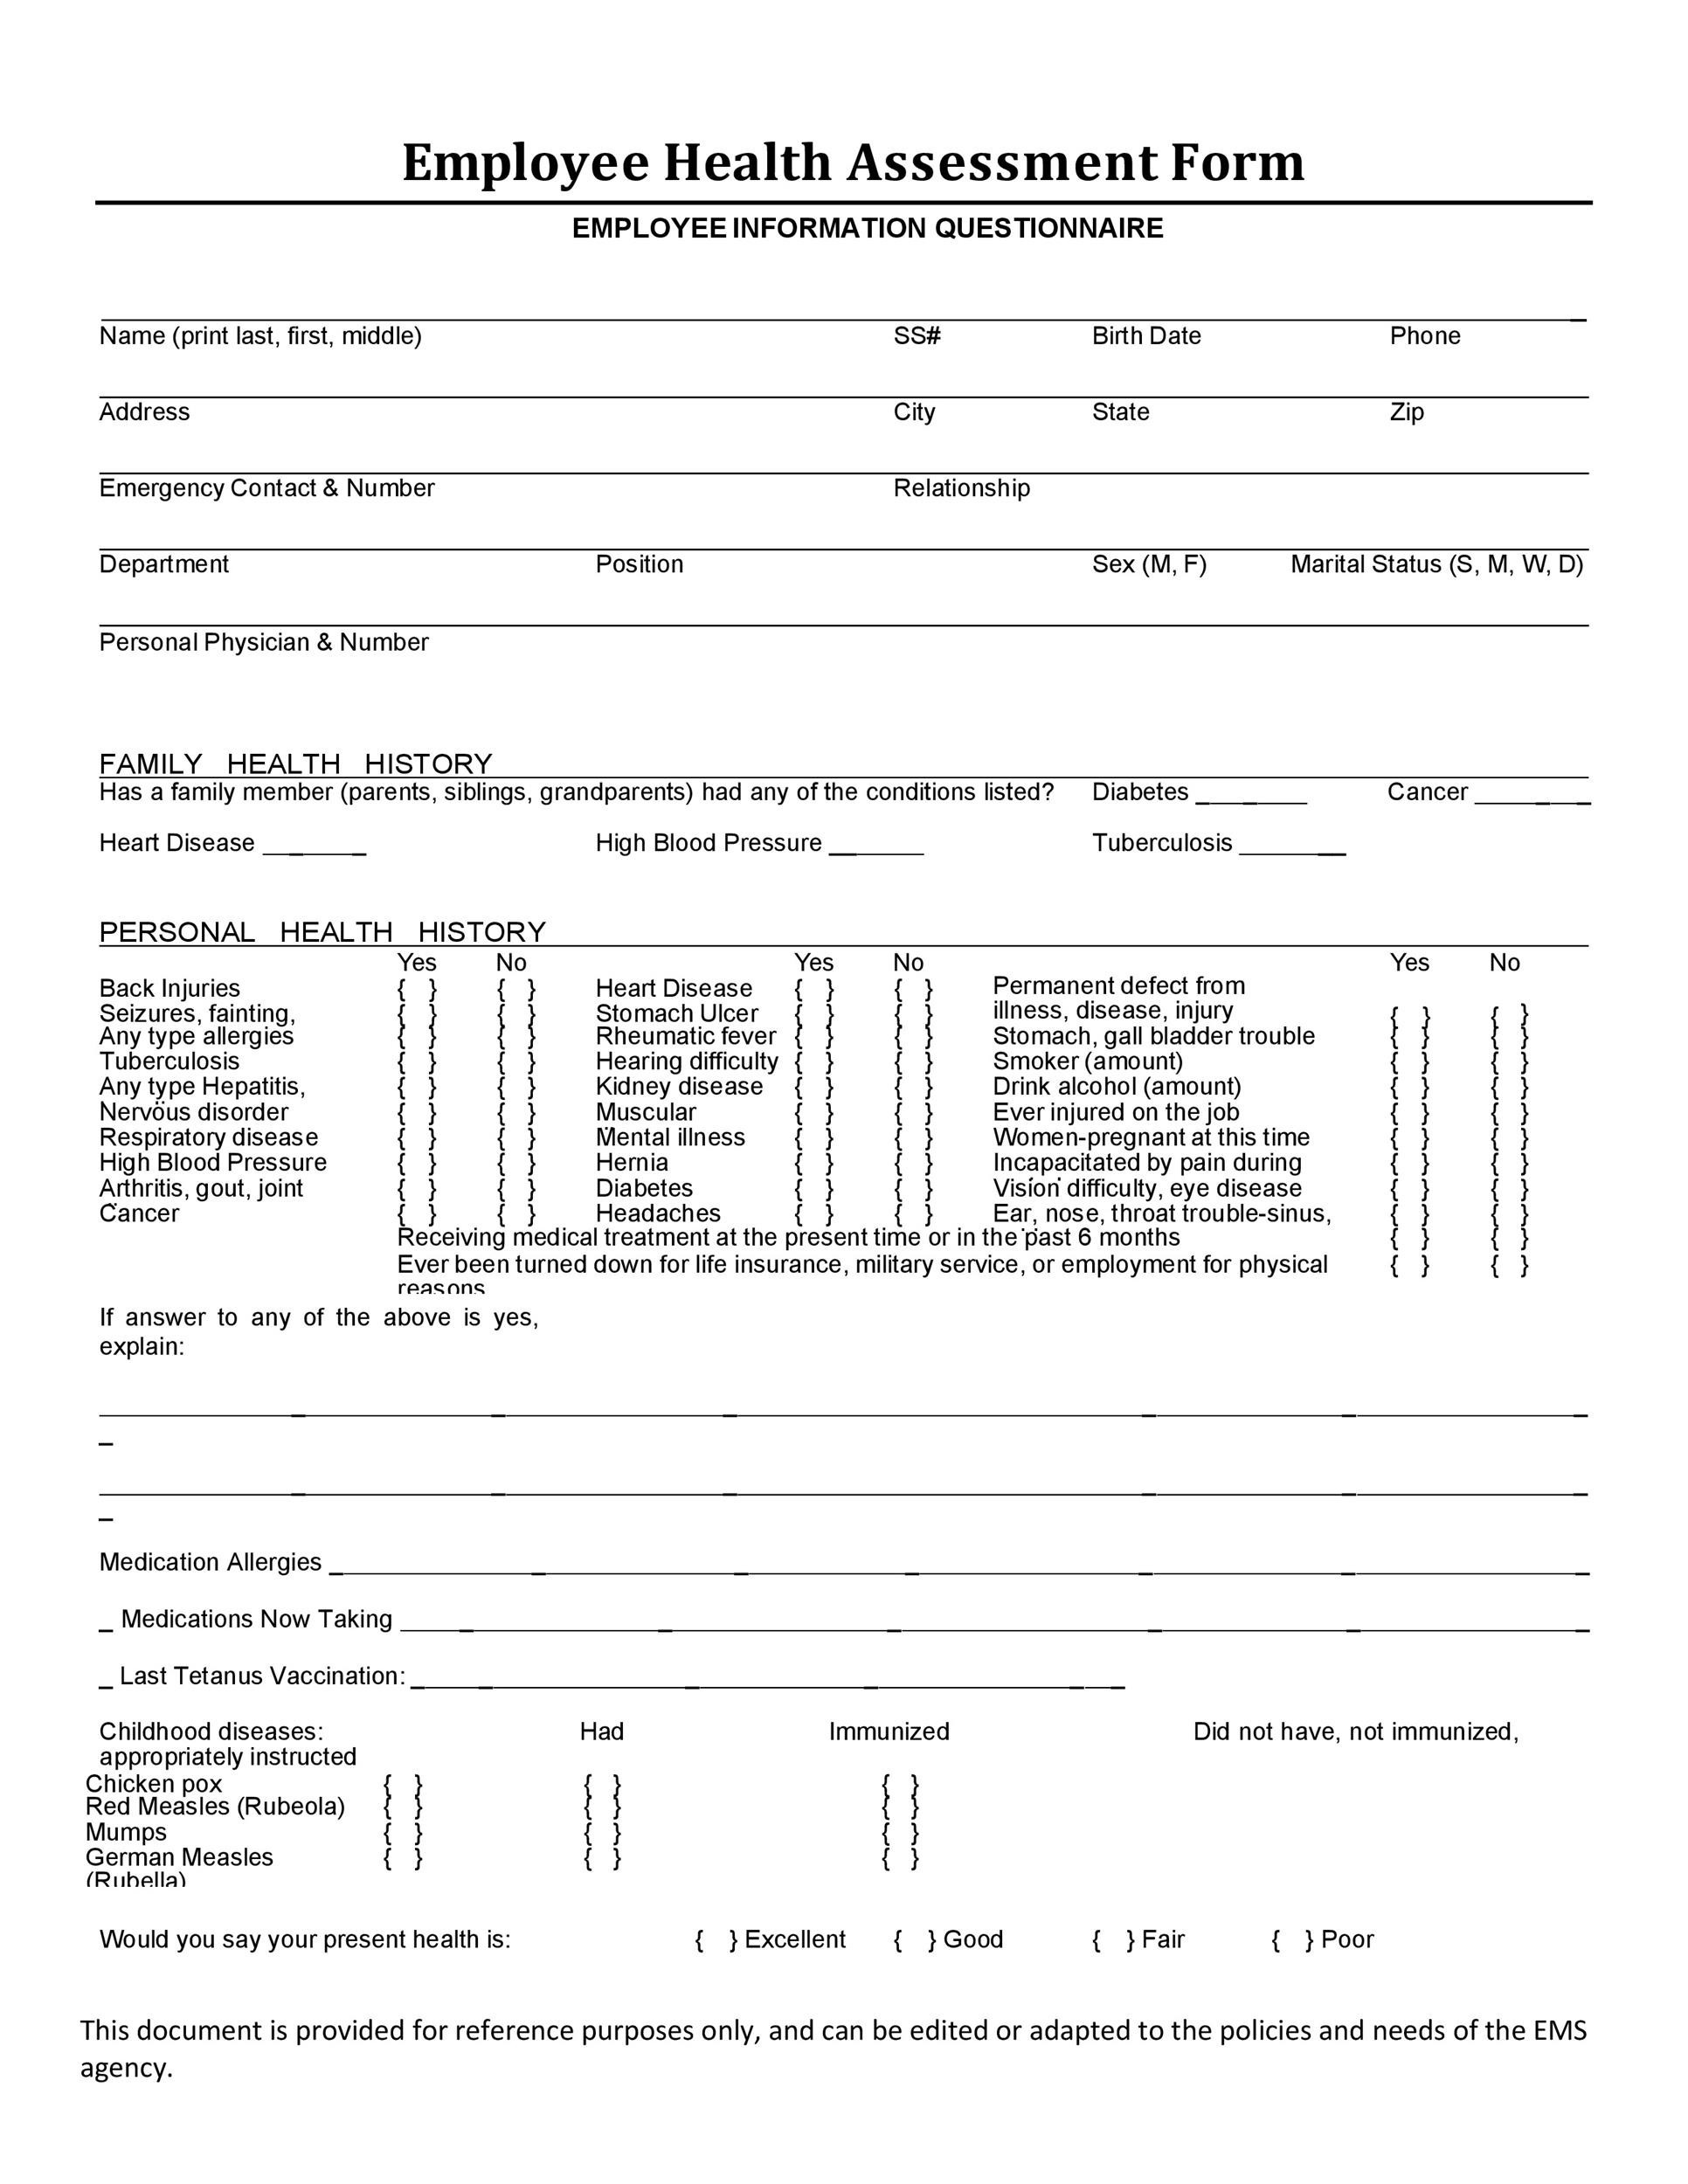 health assessment questionnaire template - 30 questionnaire templates word template lab